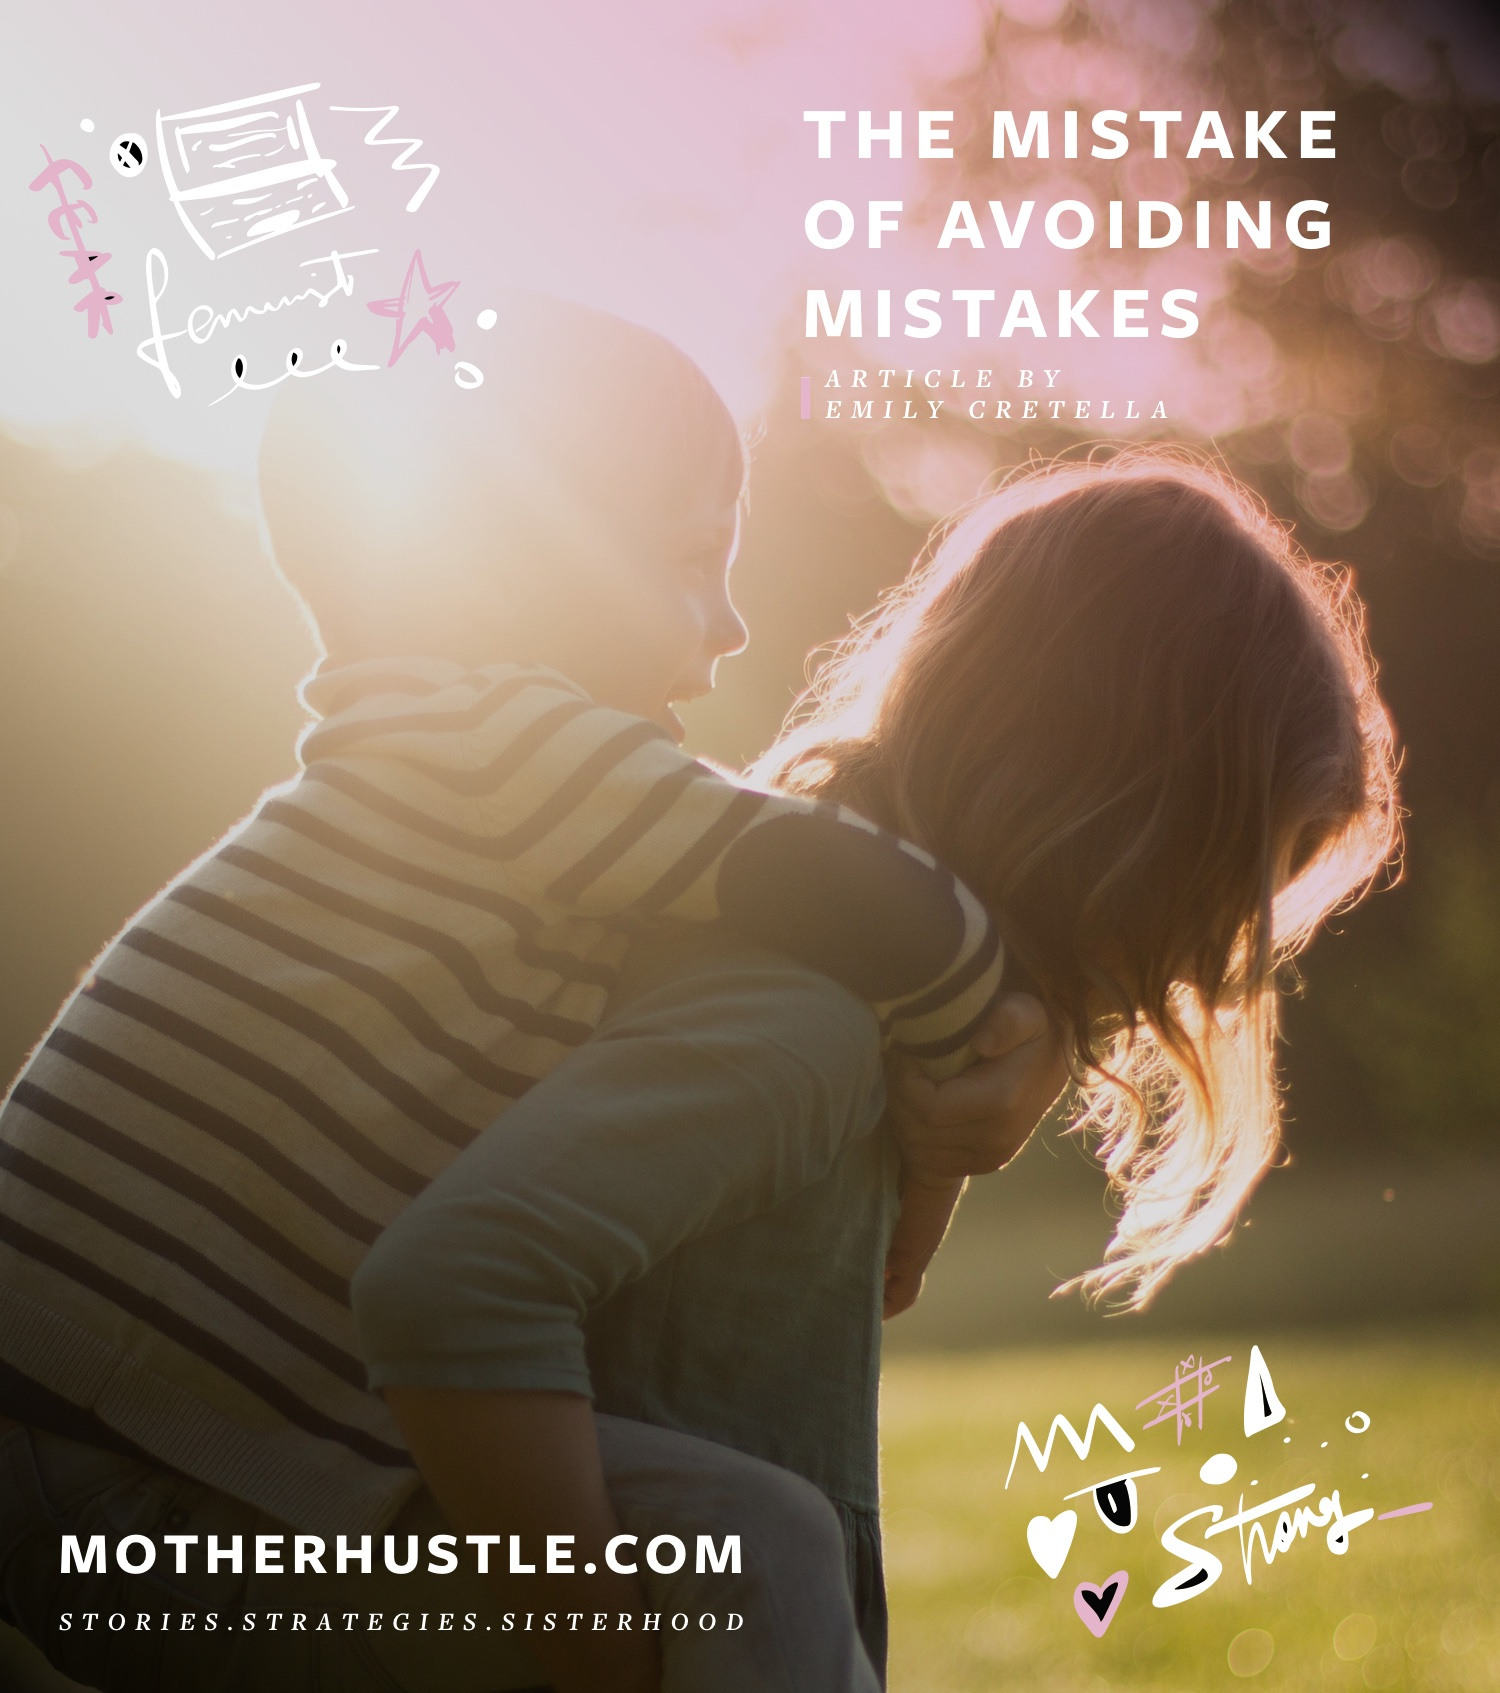 The Big Mistake of Avoiding Mistakes - Emily Cretella MotherHustle